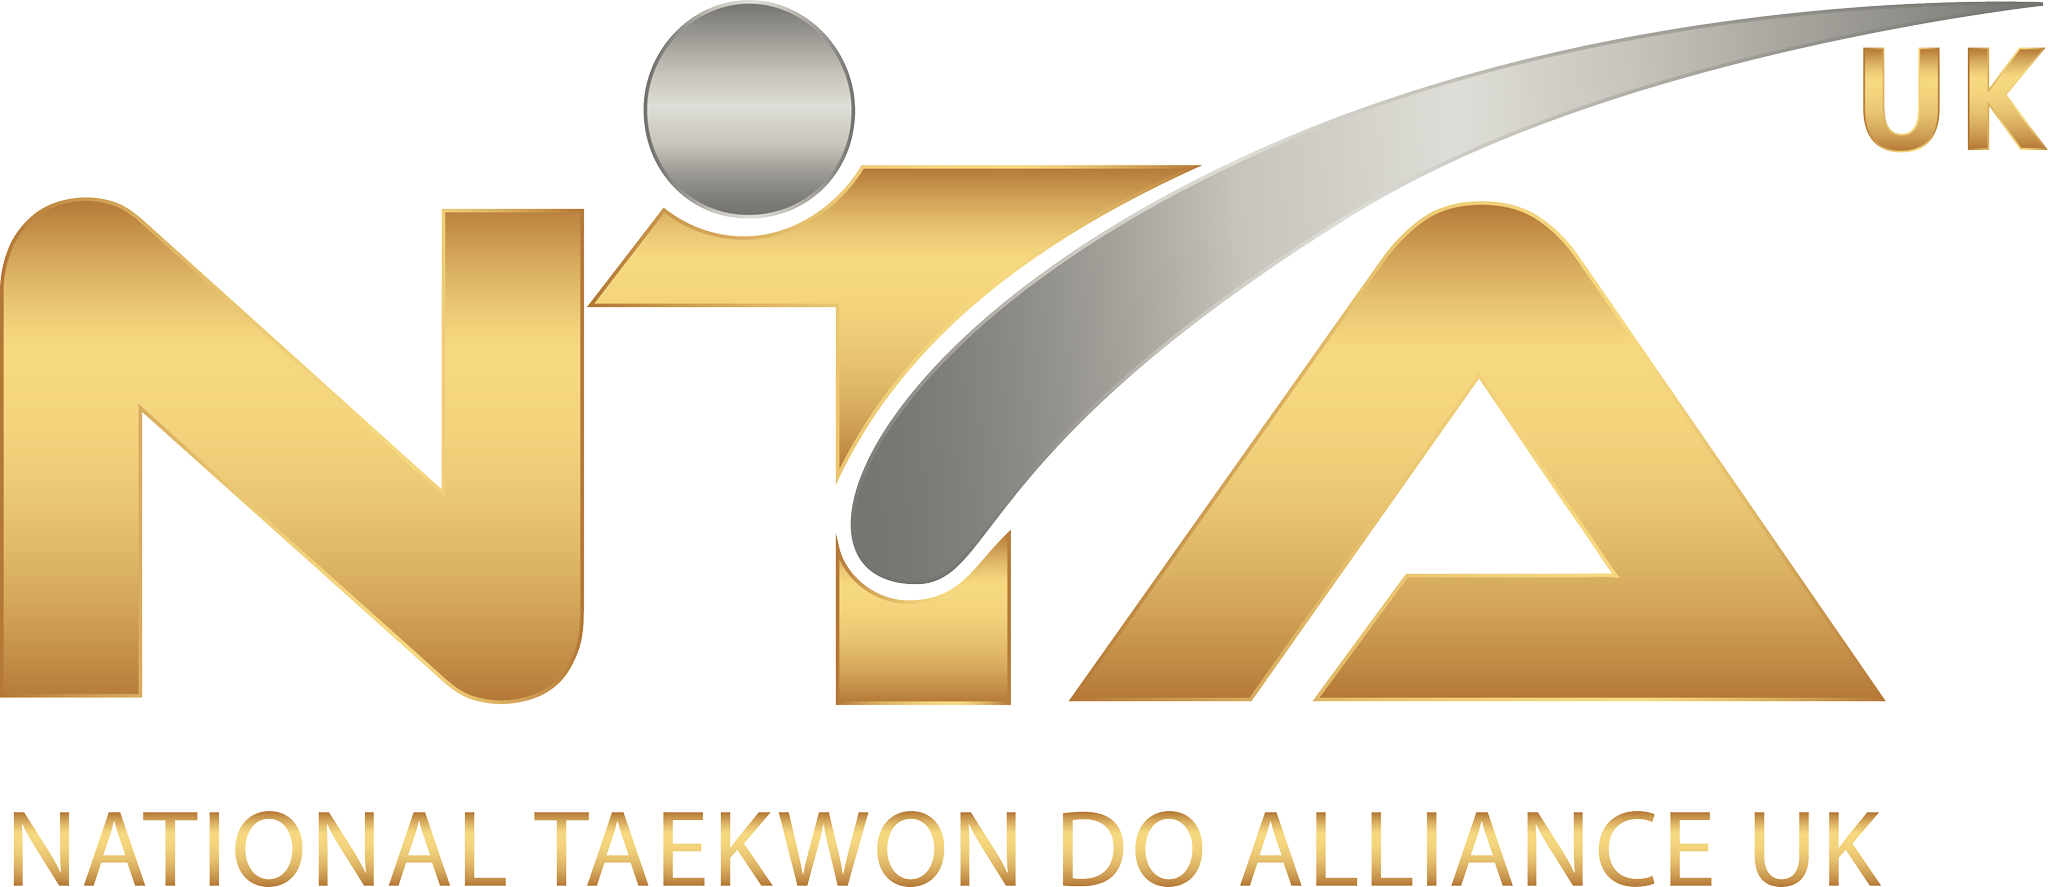 National Taekwon-Do Alliance UK  - Martial Arts Classes in East Grinstead